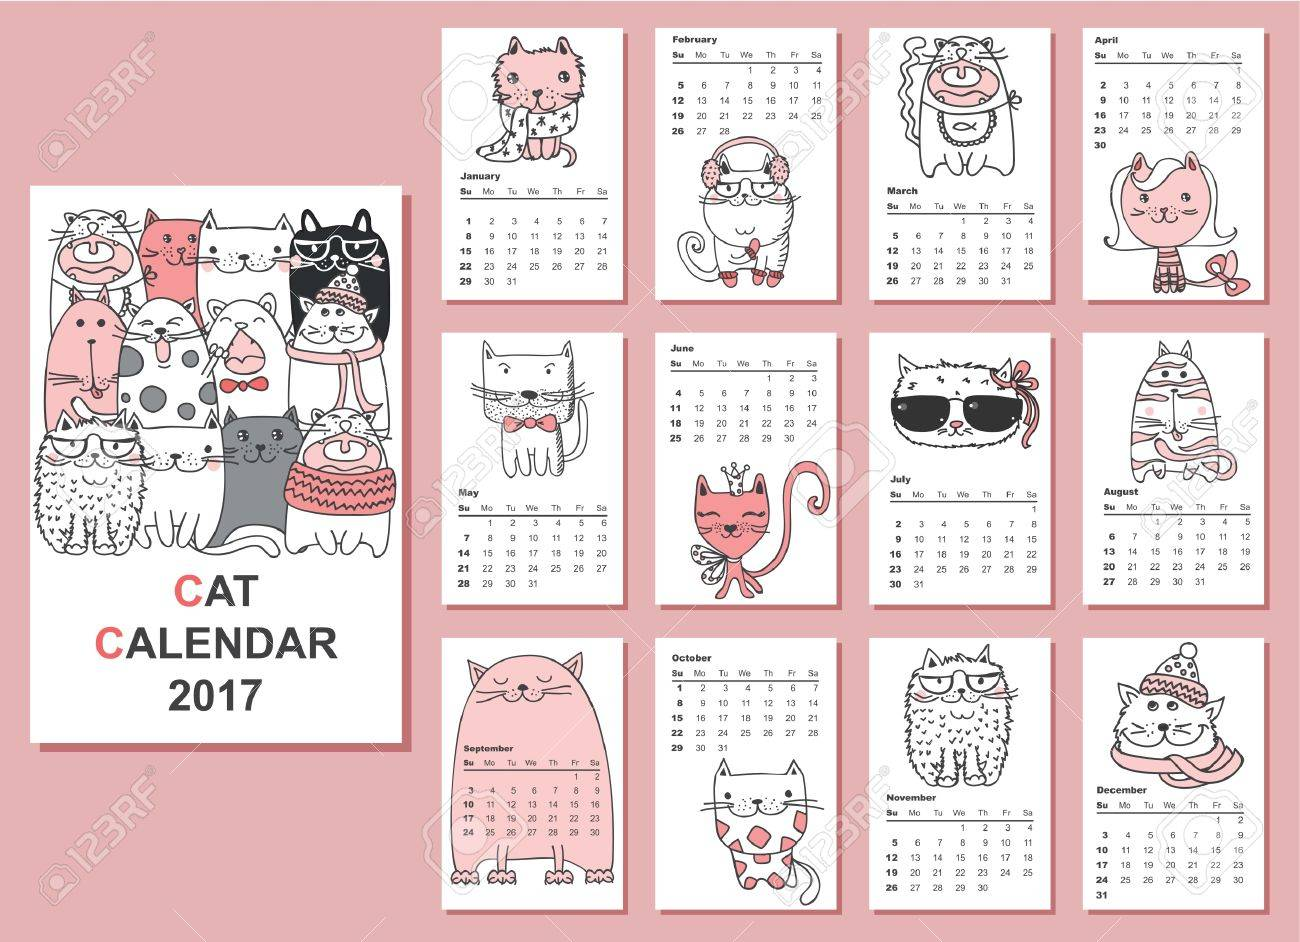 calendar 2017 cute cats for every month royalty free cliparts